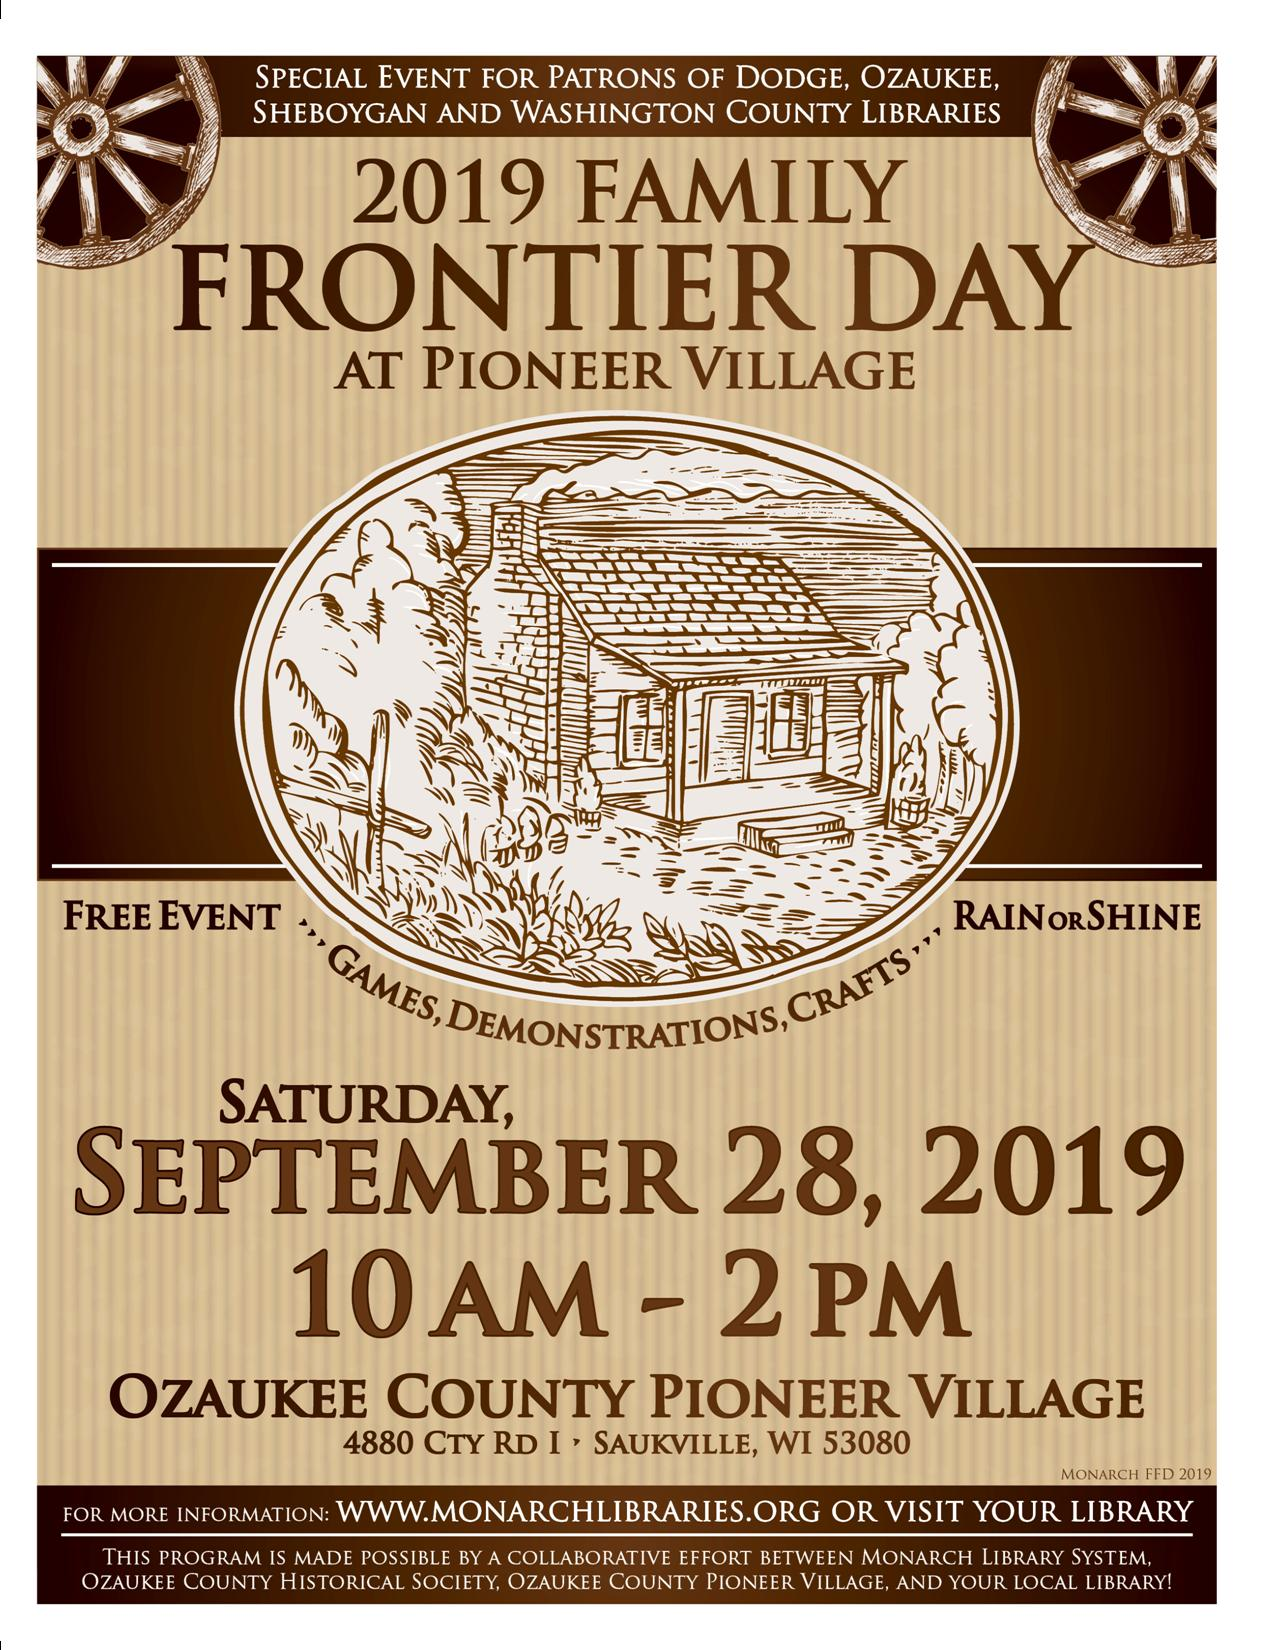 Family Frontier Day at Pioneer Village @ Ozaukee County Pioneer Village